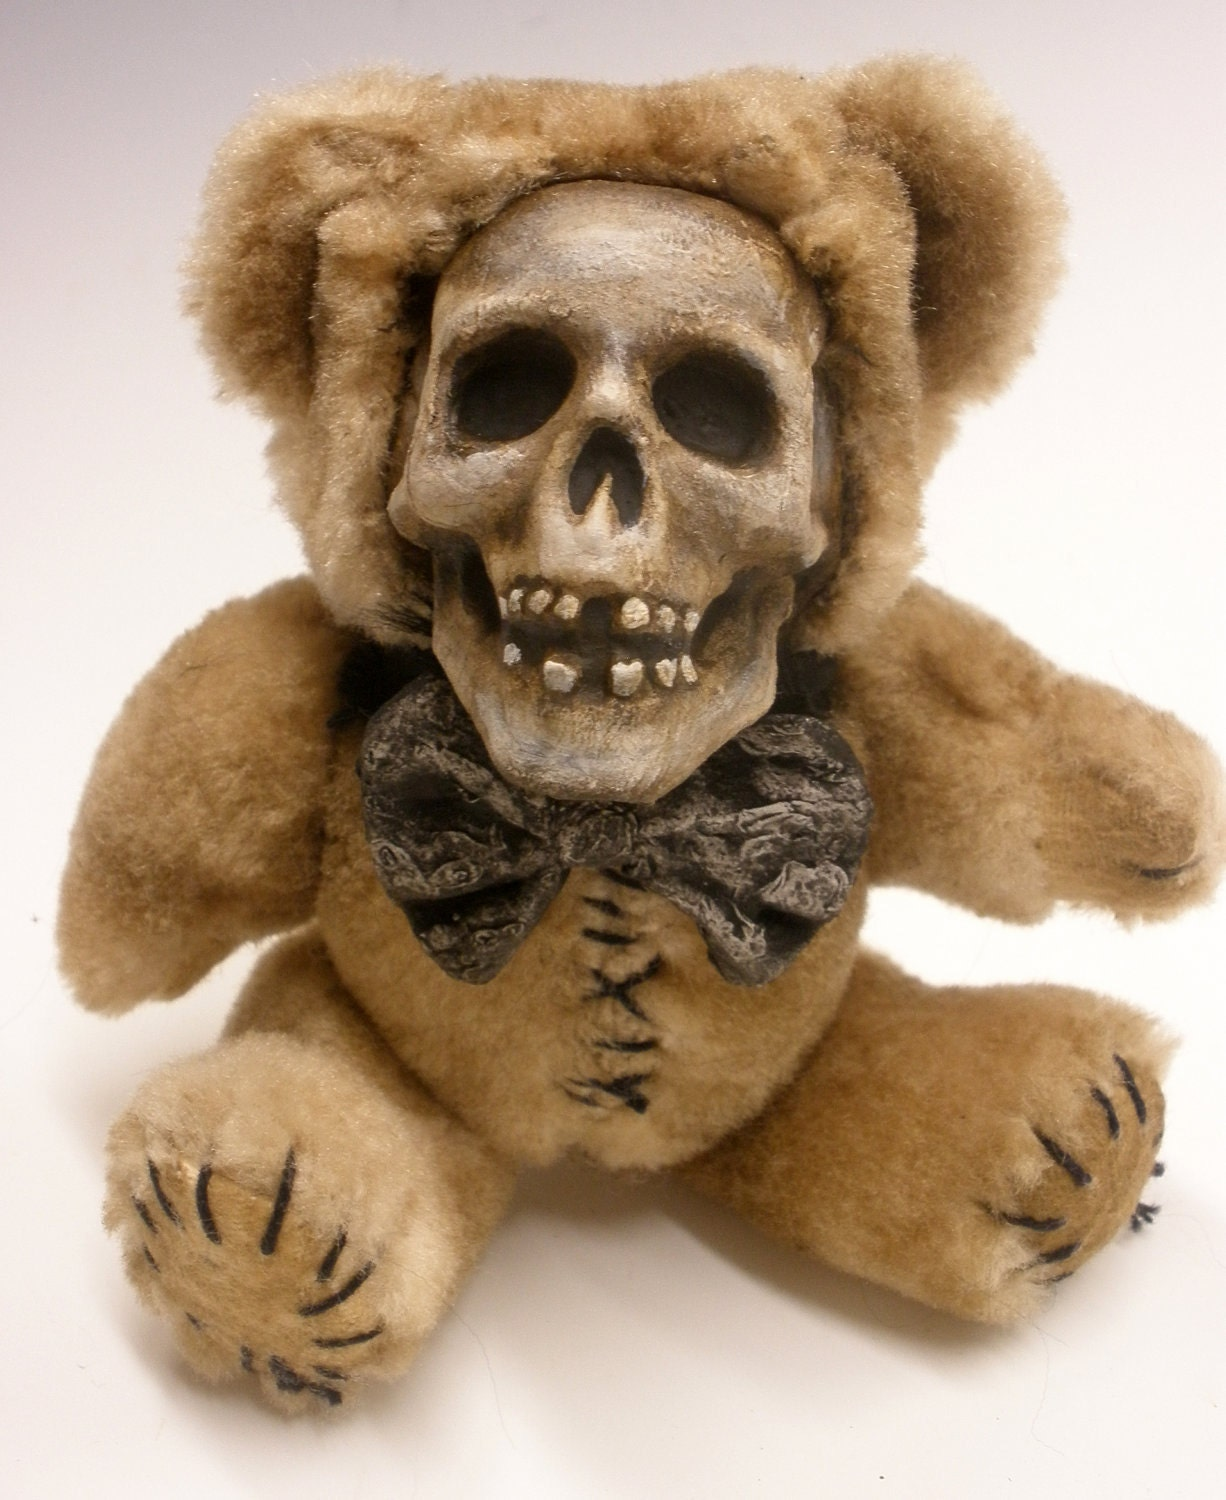 039a wild teddy bear ate my beaver039 and other creepy stories - 3 1